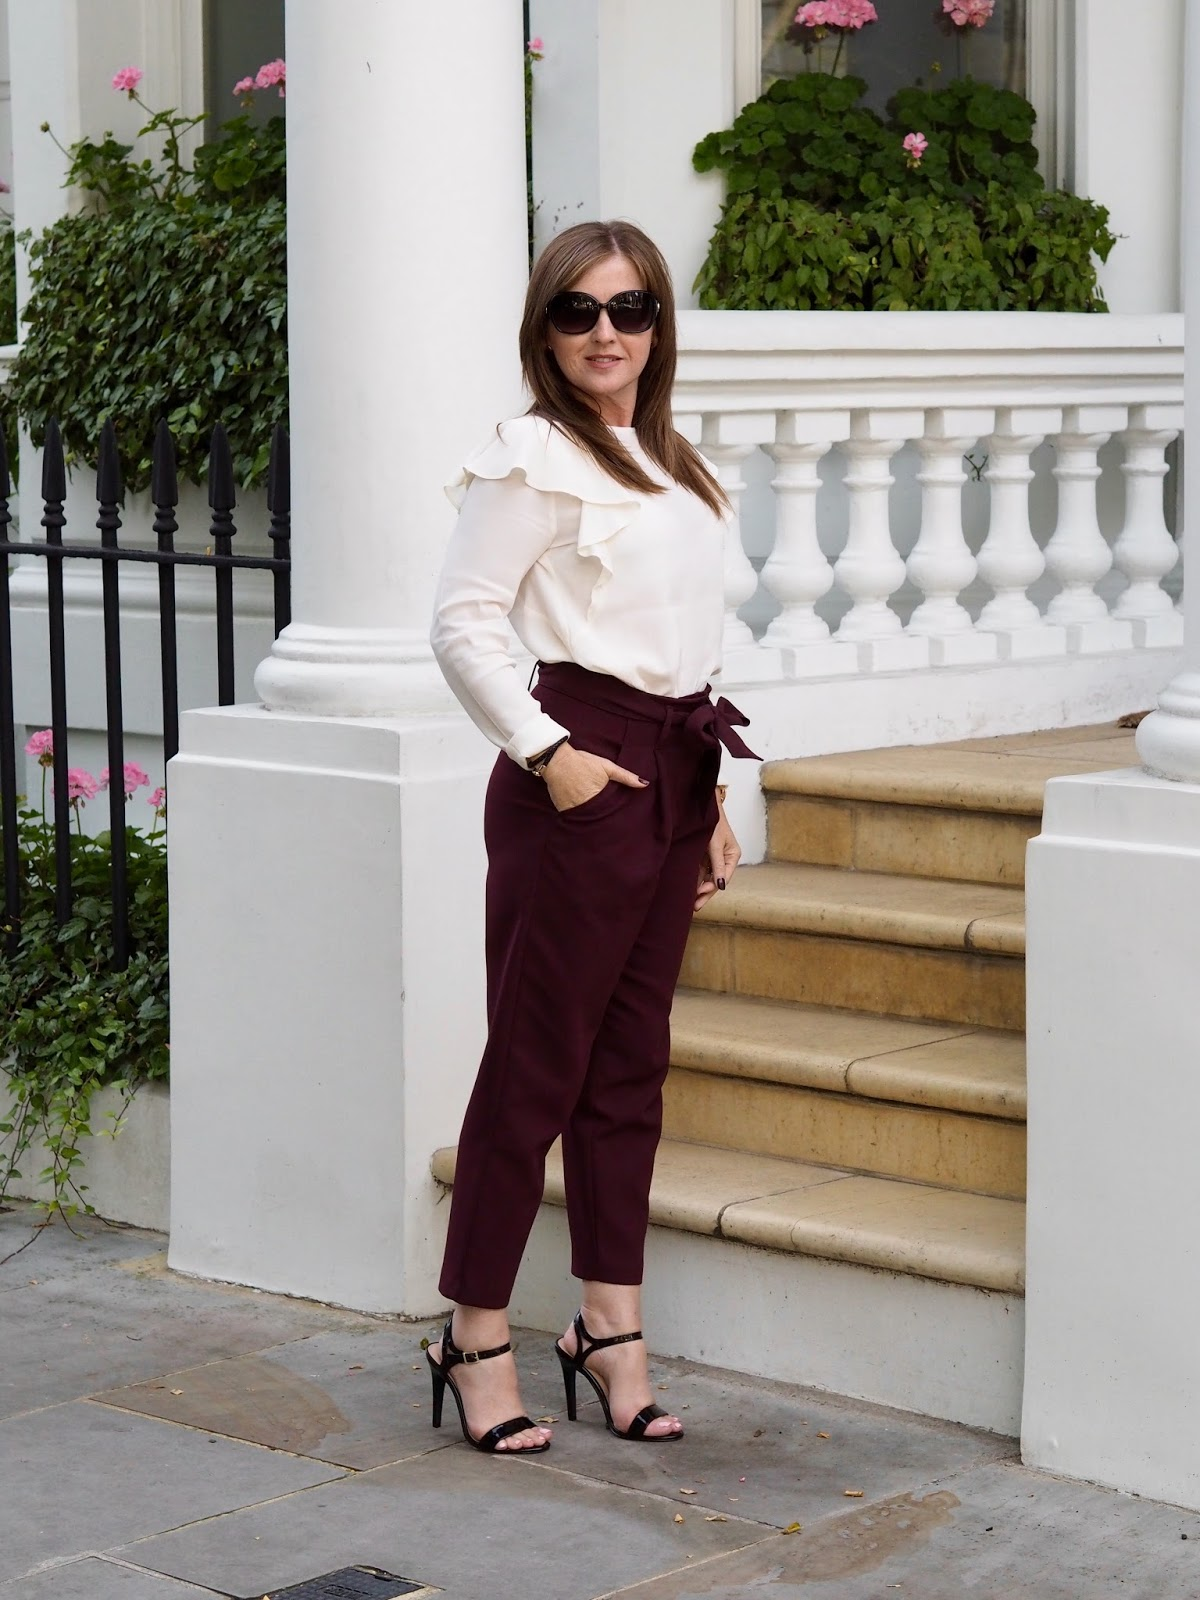 London Fashion Weekend outfit of the day Priceless Life of Mine style New Look trousers